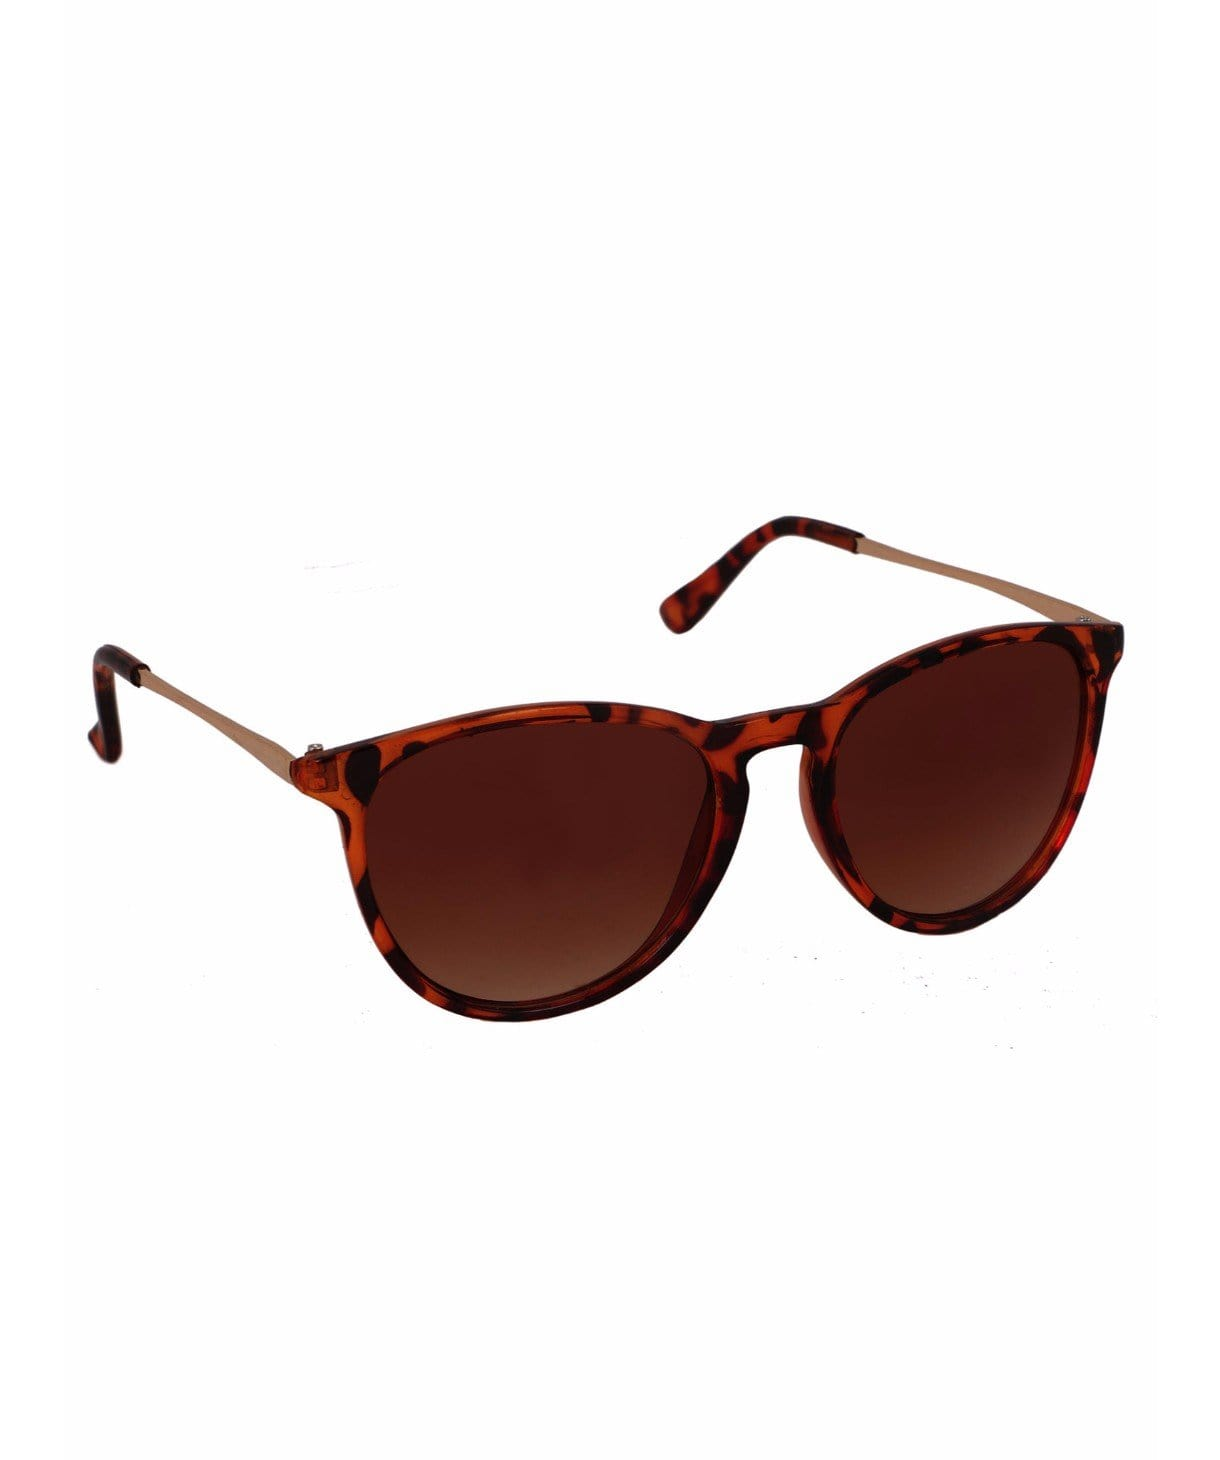 Chic Leopard Sunglasses - Uptownie